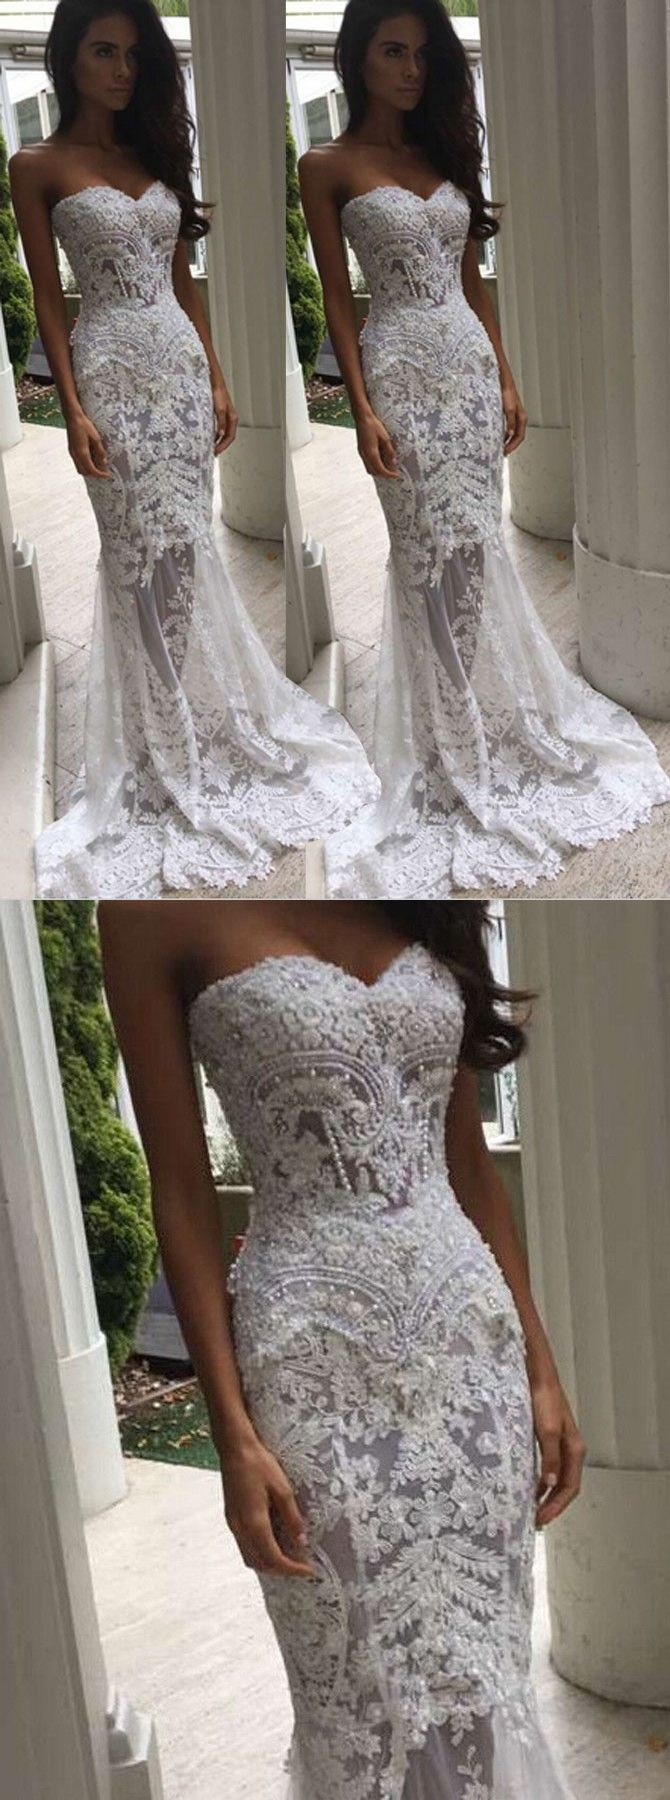 White Lace Wedding Dress : Best ideas about white lace on classy